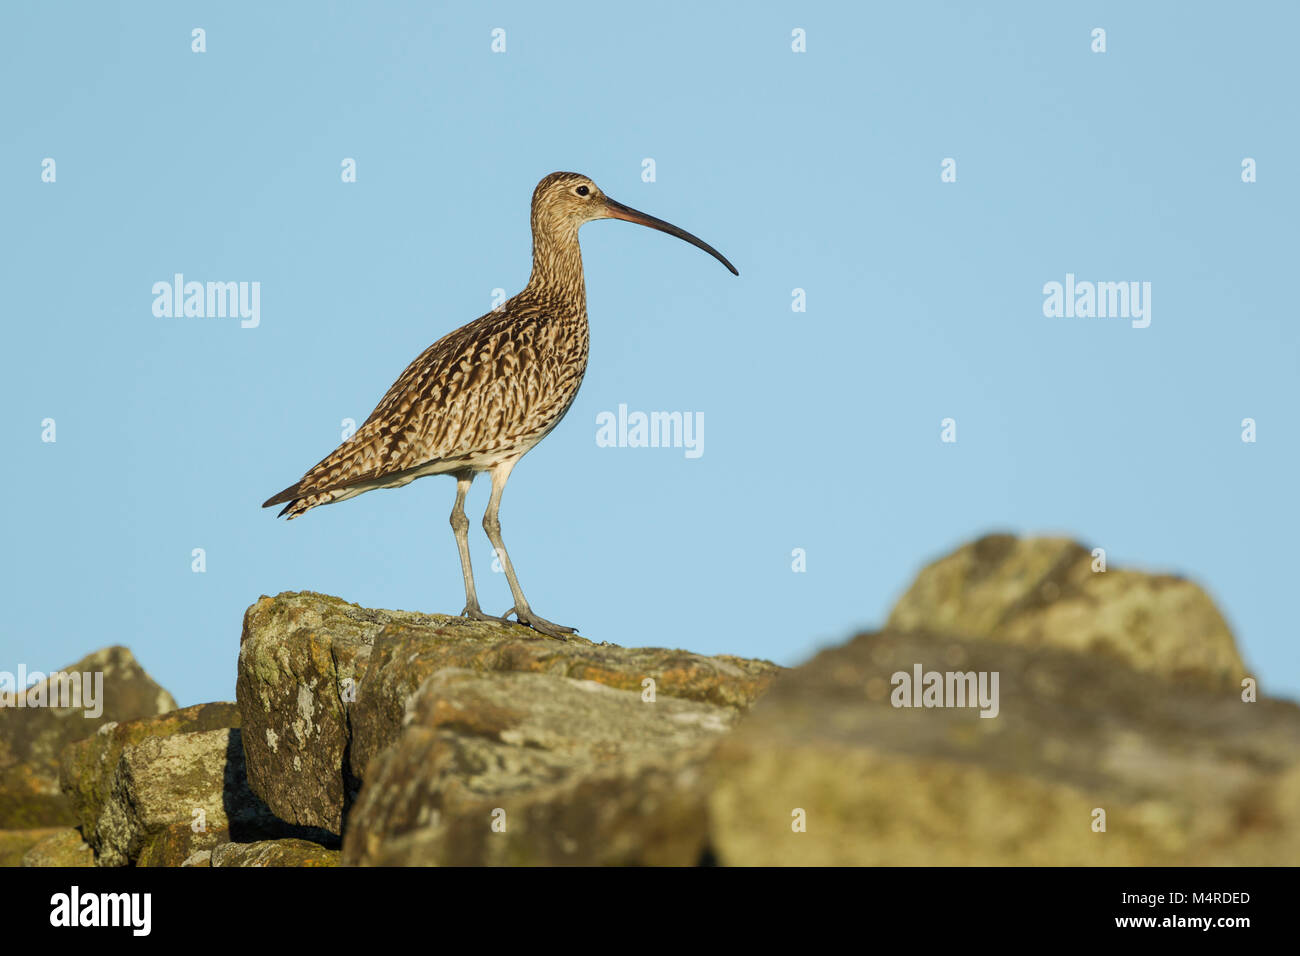 Eurasian Curlew, Latin name Numenius arquata, standing on a stone wall against blue sky, showing curve of bill and - Stock Image